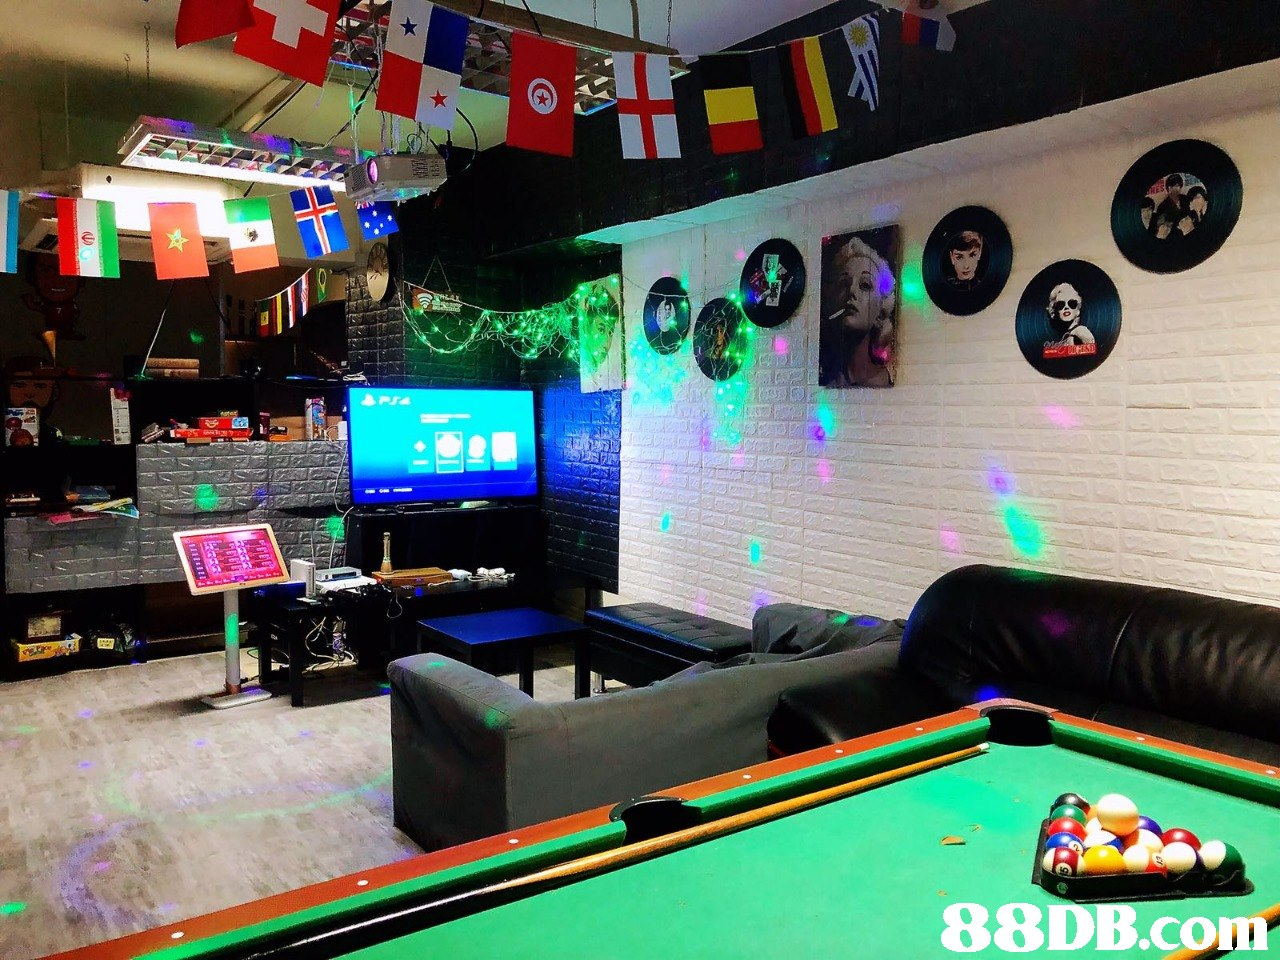 8r 8DB.com  recreation room,billiard room,games,indoor games and sports,display device